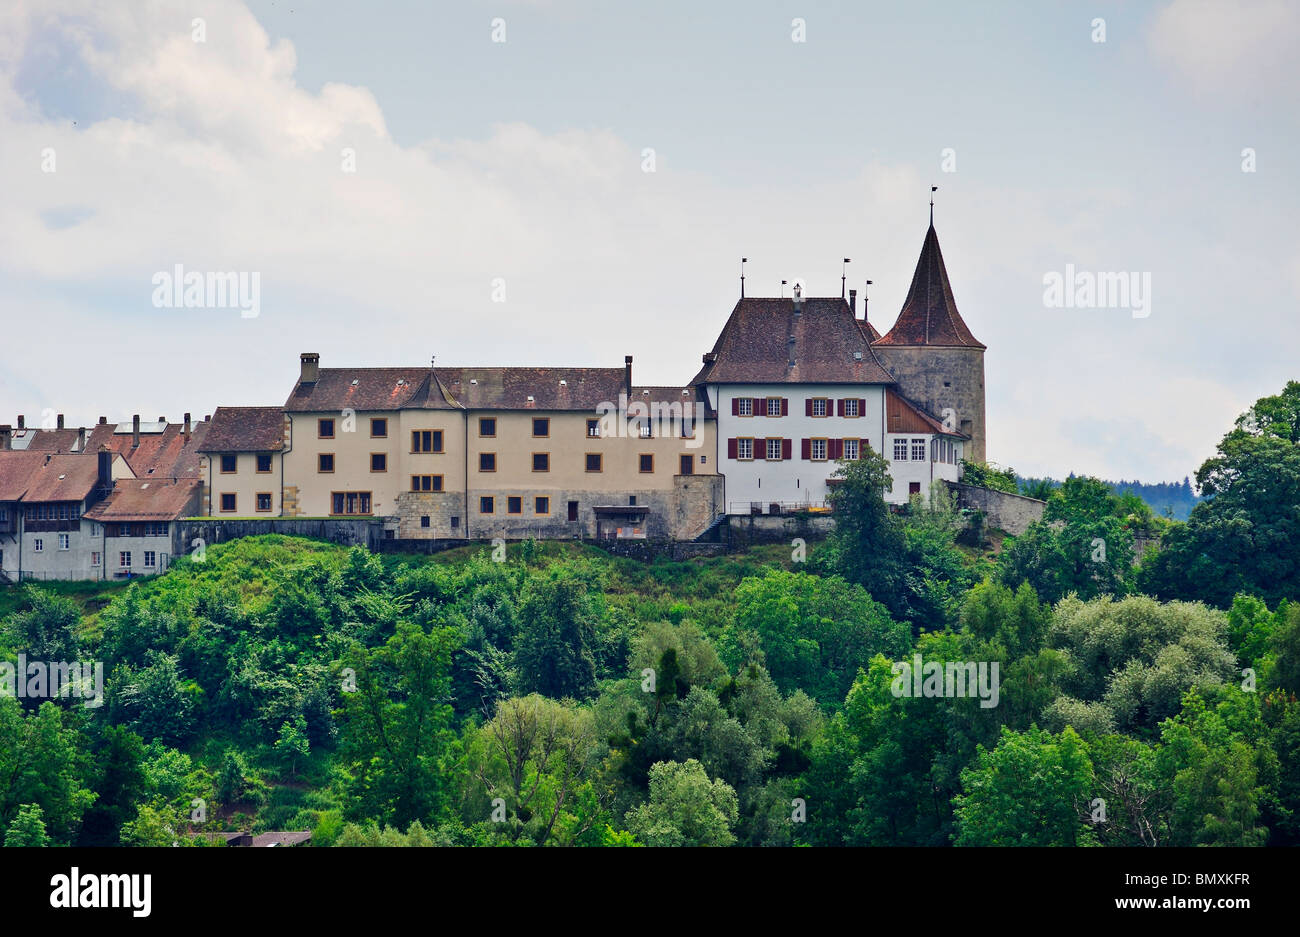 The chateau at Erlach, canton Bern, Switzerland, as seen from the Lac de Bienne (Bielersee) - Stock Image